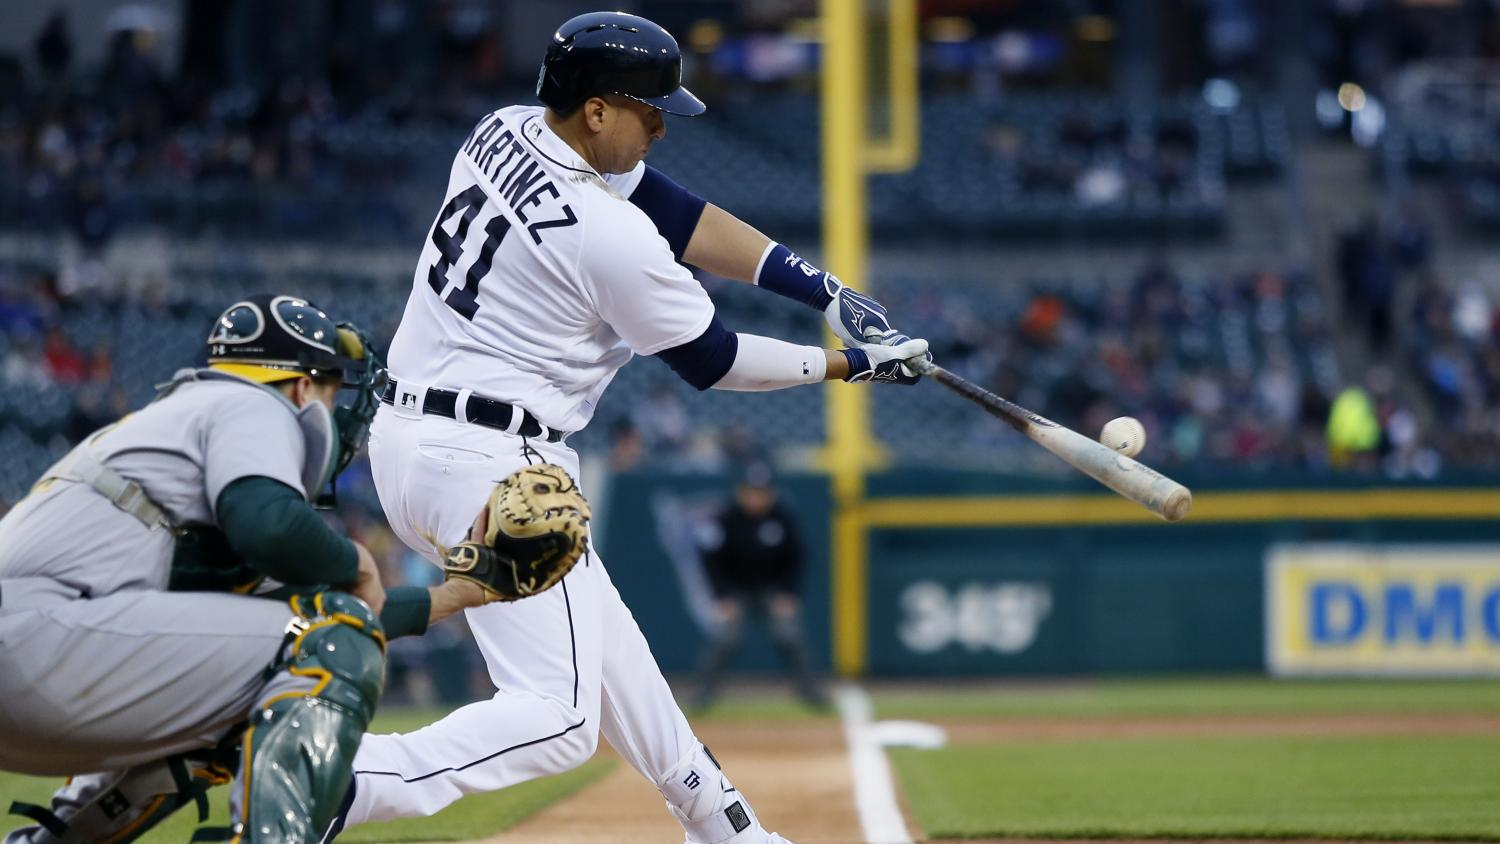 Victor-martinez-horseshit-comment-tigers